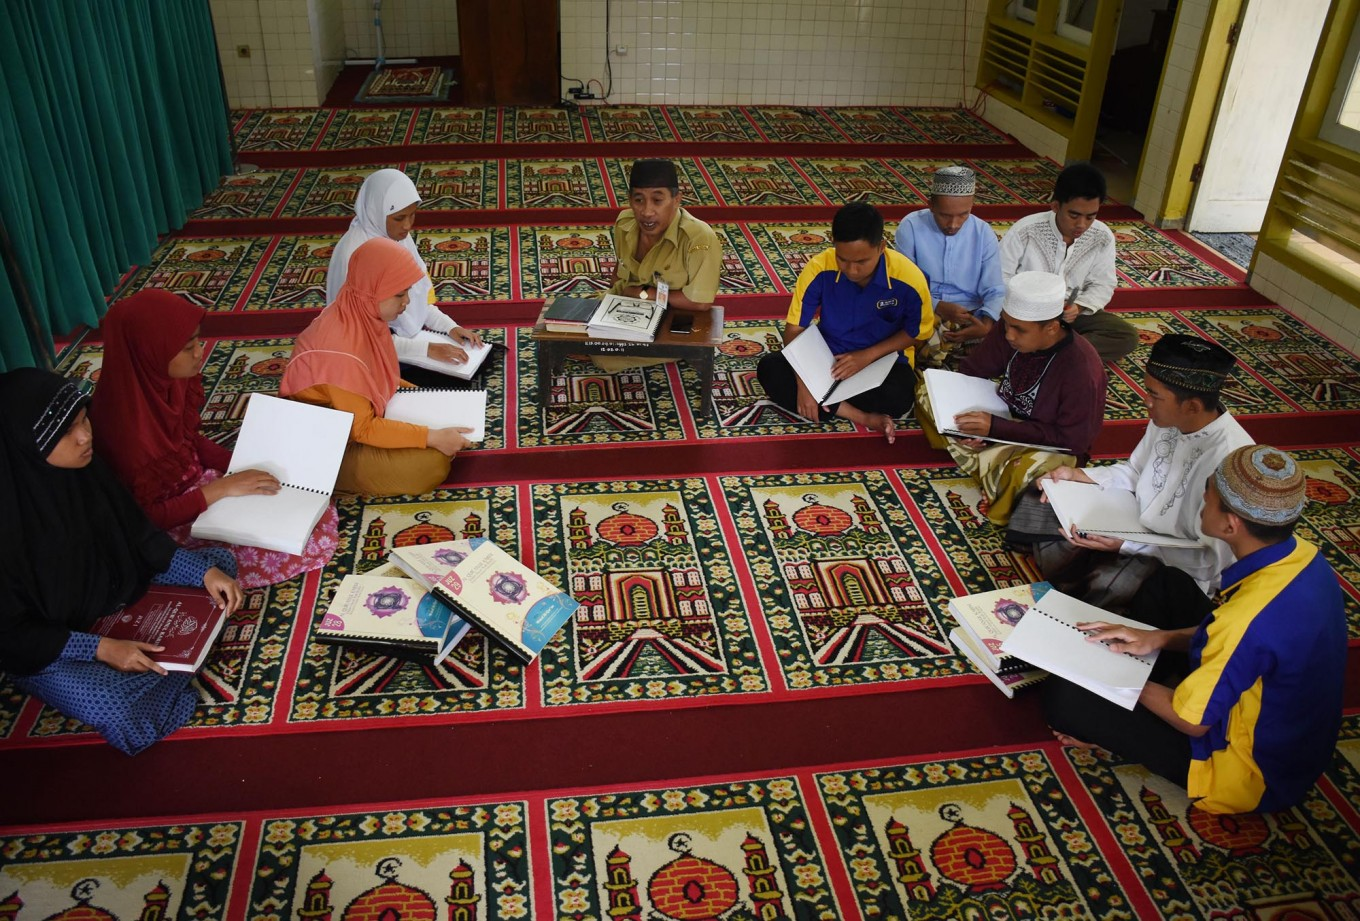 Yani (center) teaches blind worshipers to read the Quran in braille at An Nur Mosque in the Rehabilitation Center for the Blind in Janti, Malang, East Java. JP/Aman Rochman